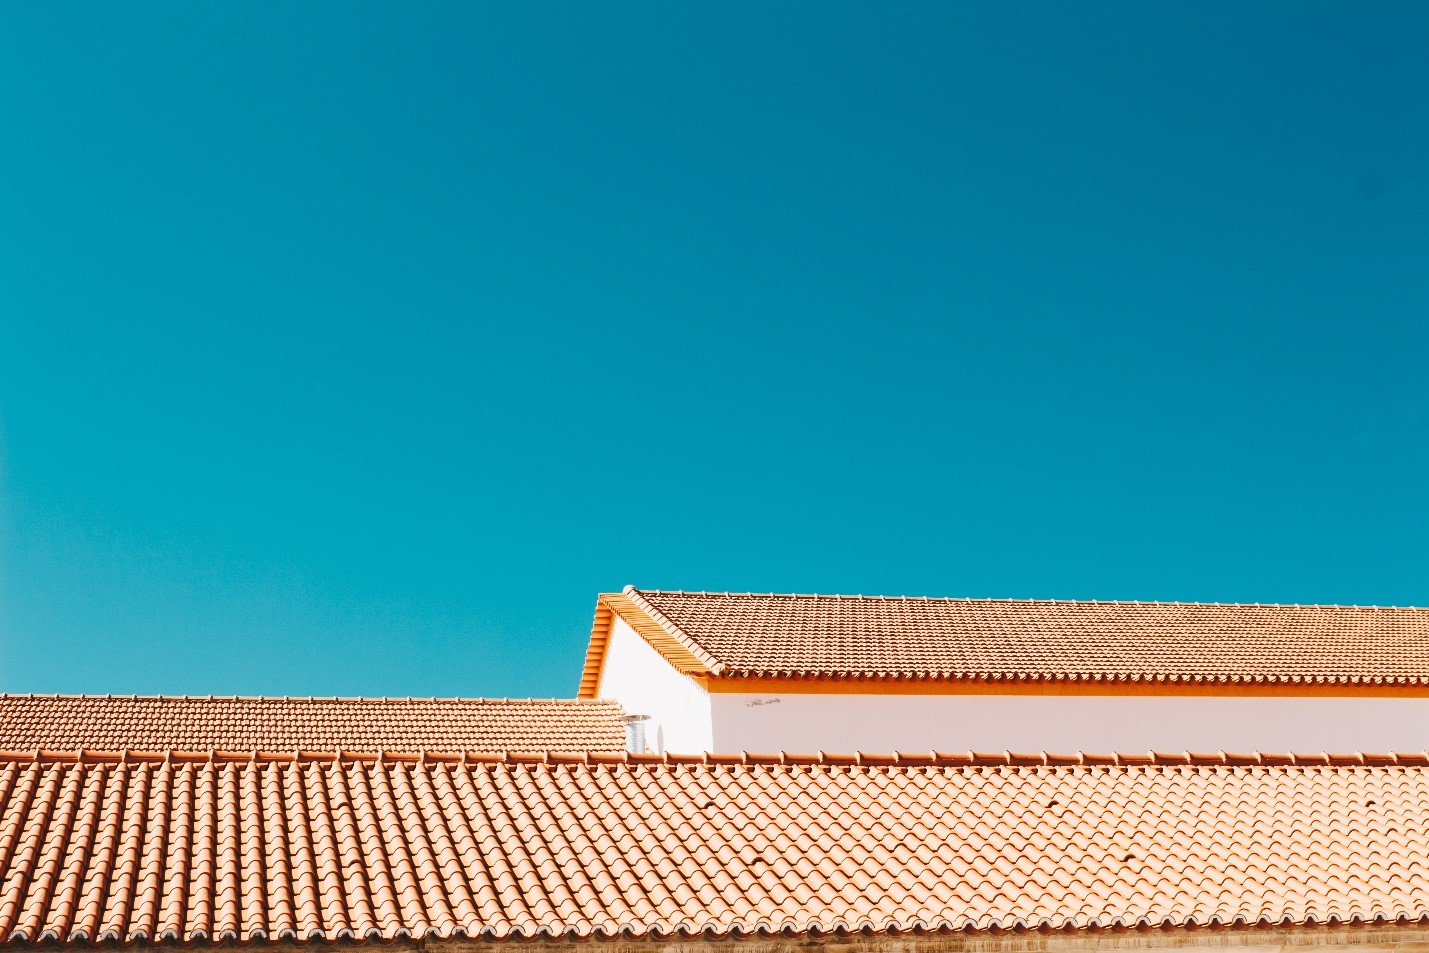 Flat or Pitched: Which is the better Roofing Option?